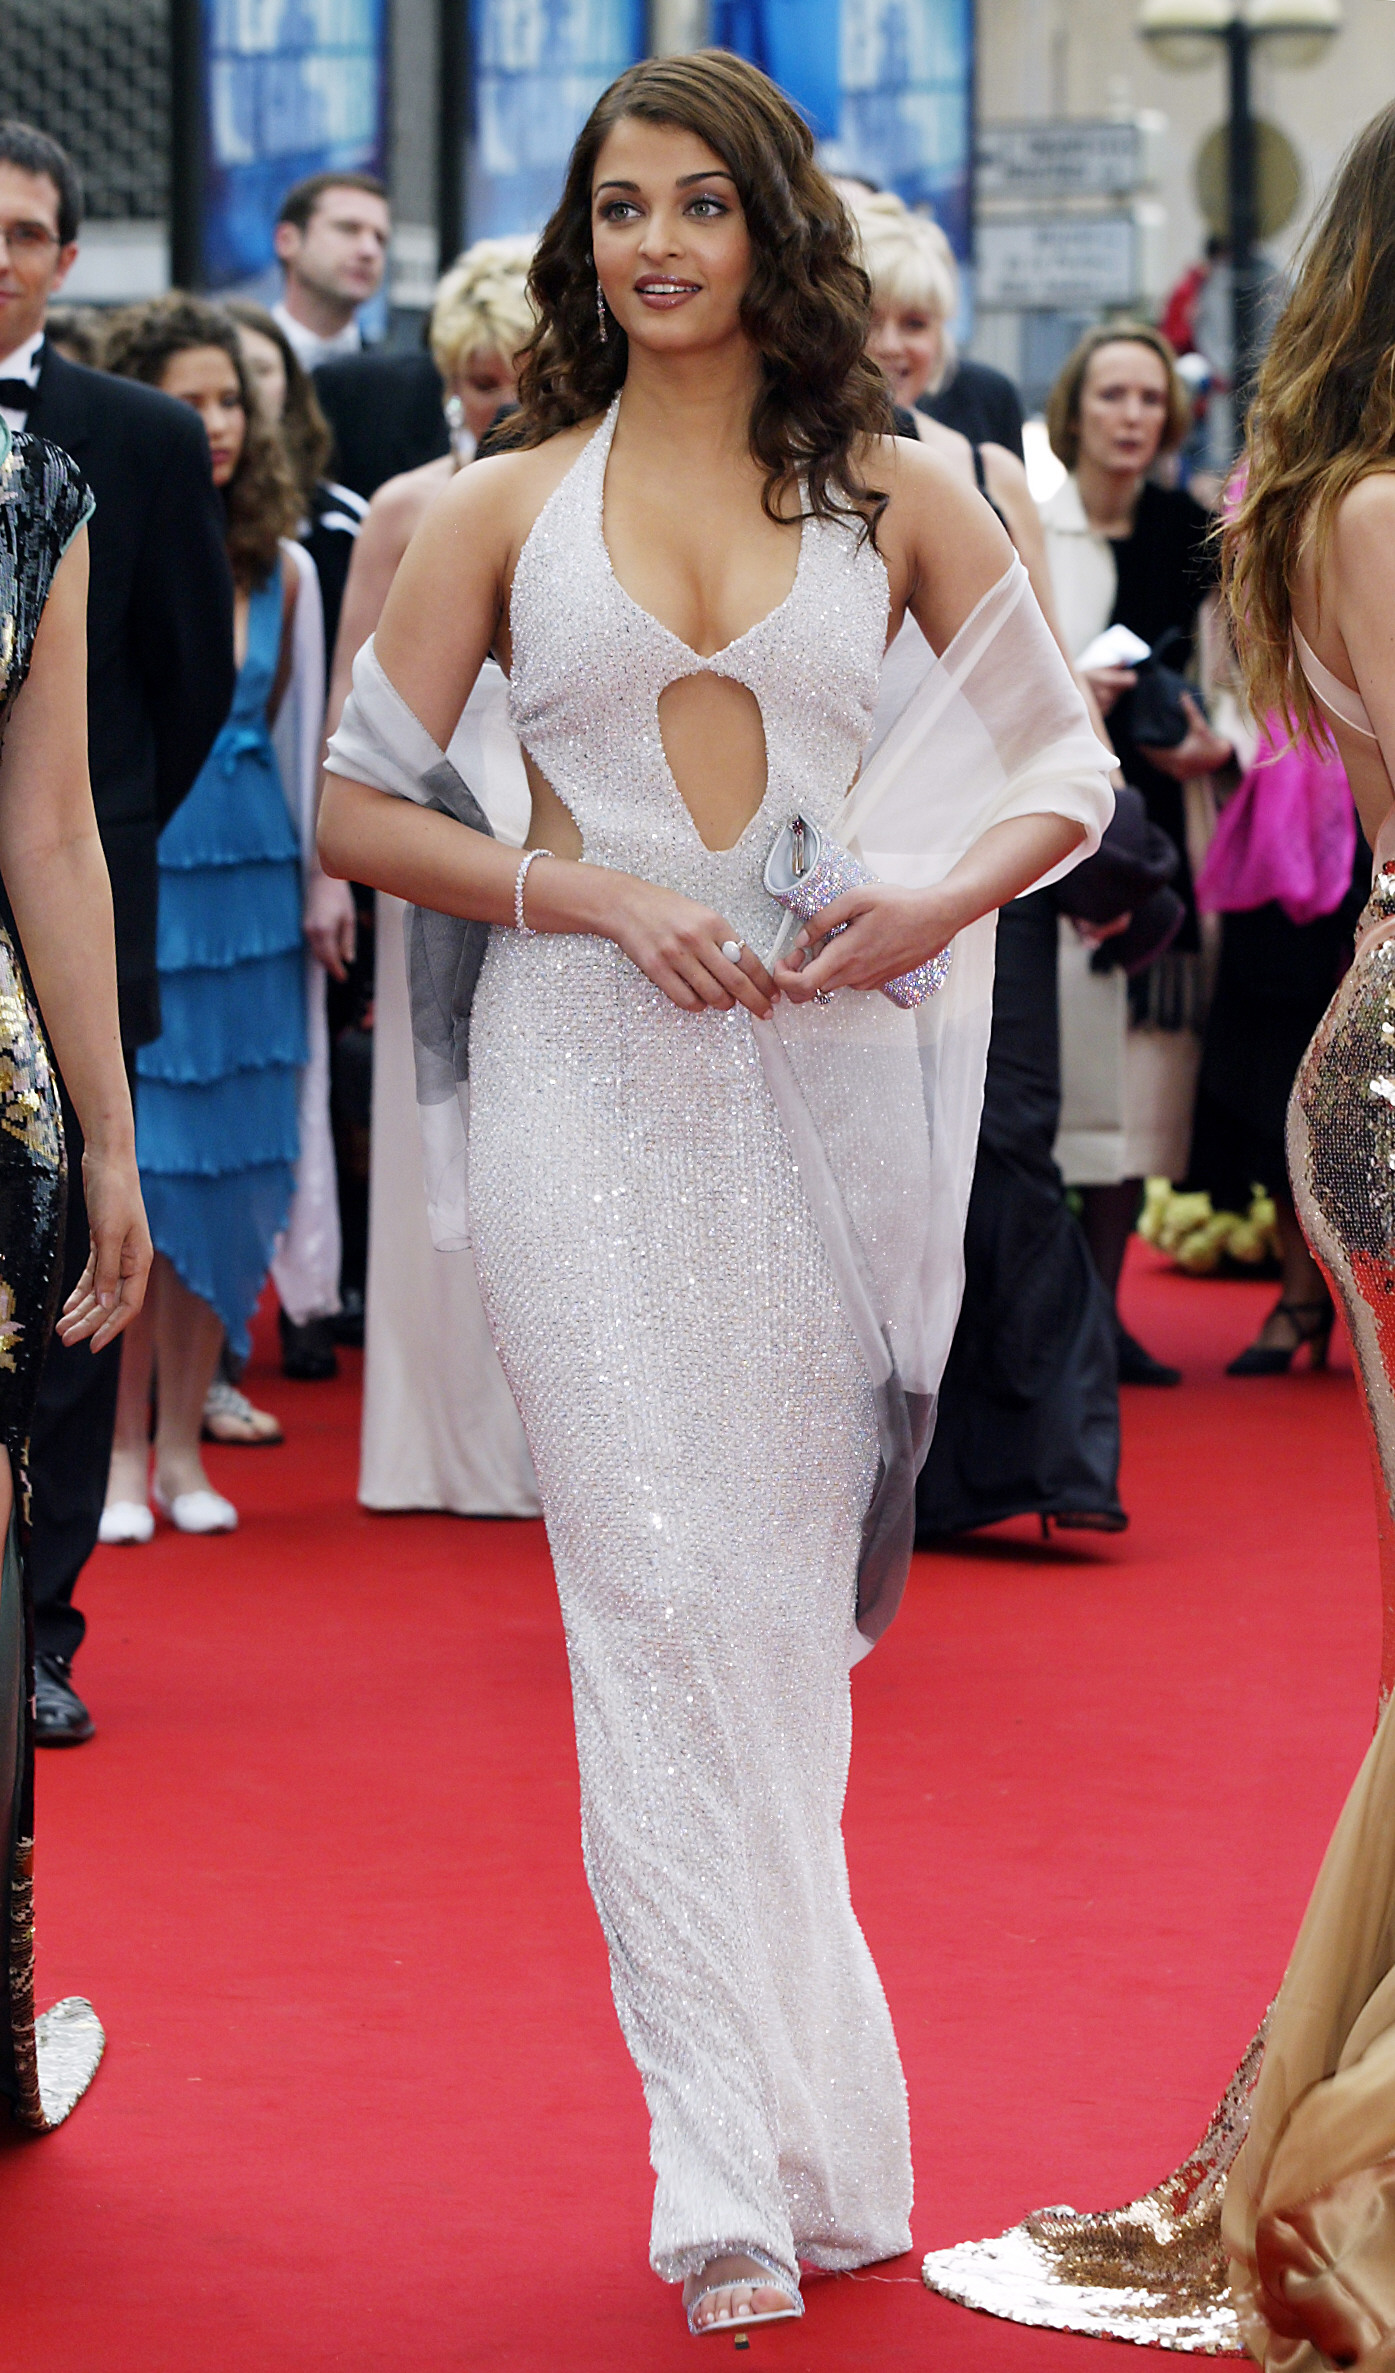 Indian model and actress Aishwarya Rai arrives for the opening ceremony at the 57th Cannes International Film Festival, 12 May 2004, in the French Riveria town of Cannes. The world's top film festival opened for its annual 12-day swirl of projections, parties and publicity after finessing a last-minute deal with protesting French entertainment industry workers to stop them sabotaging the event.AFP PHOTO/PASCAL GUYOT